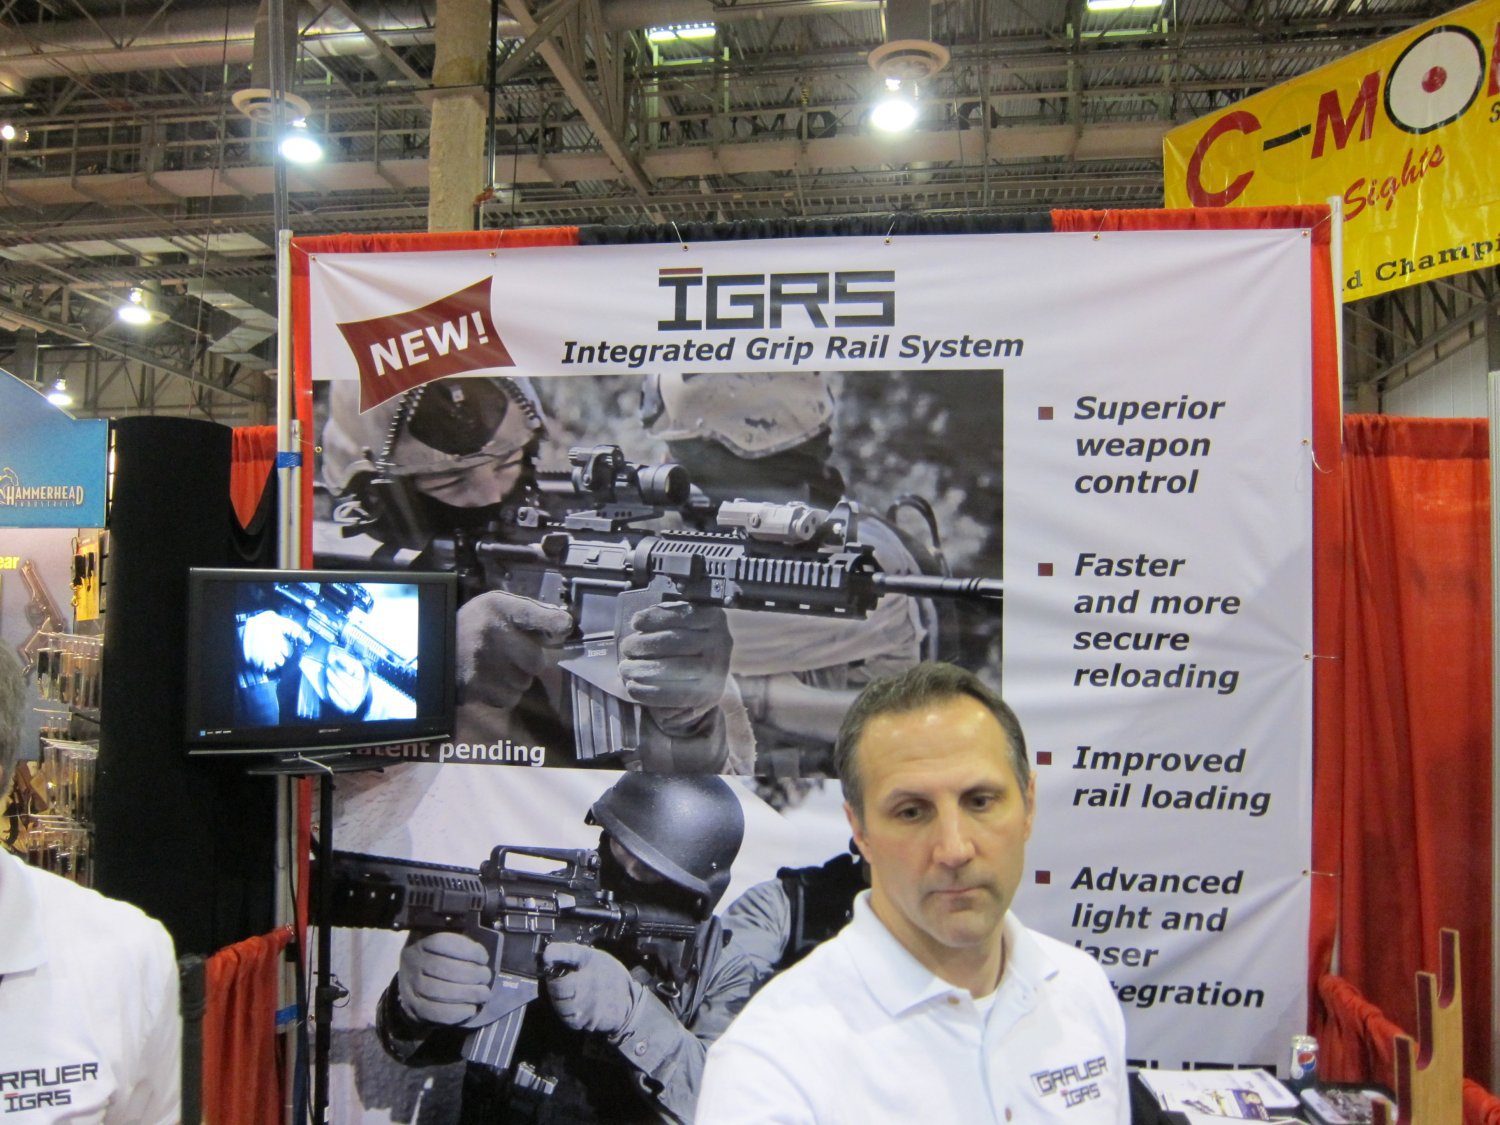 SHOT Show 2010 Grauer Systems Integrated Grip Rail System IGRS 7 <!  :en  >Grauer Systems Integrated Grip Rail System (IGRS) Extended Ramped and Flared Magwell / Vertical Foregrip<!  :  >